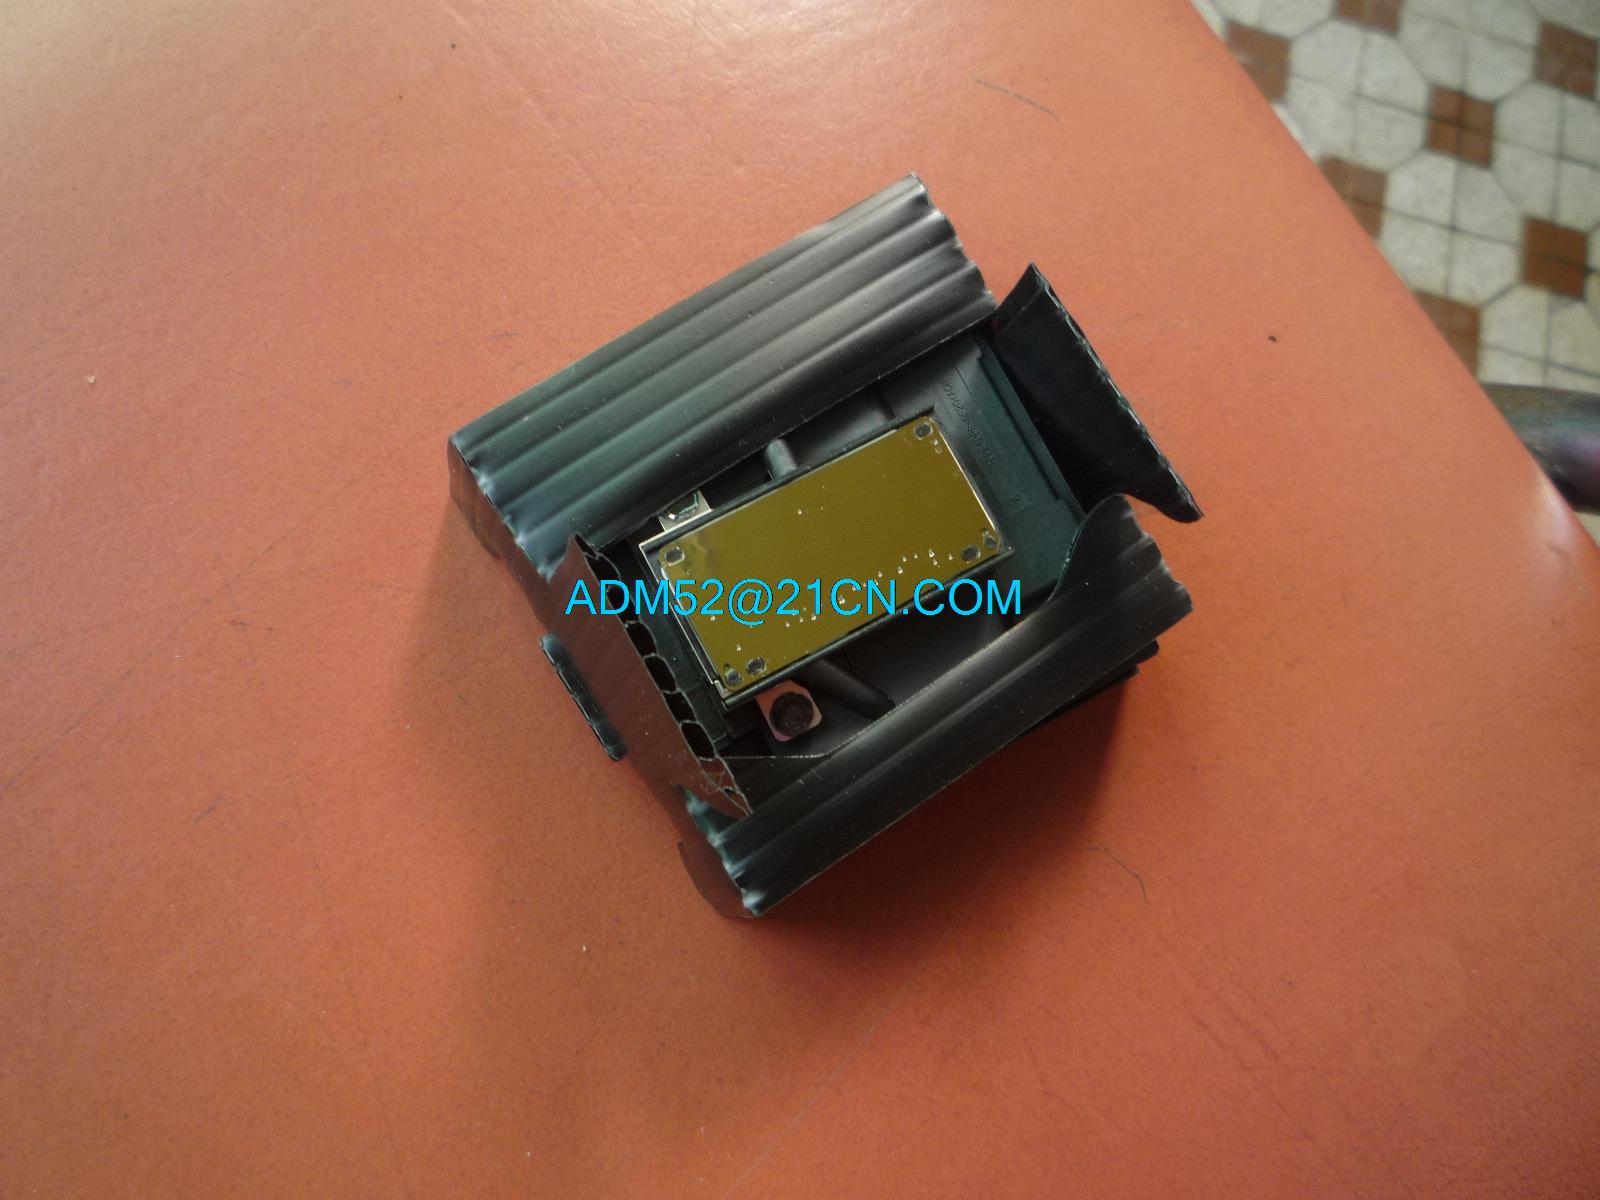 New and original Printhead Print Head For EPSON XP-402/XP-406/XP-405/XP-403/XP-402 XP-400 Printhead Print Head sprayer шины нижнекамск 402 320r508 12 00r20